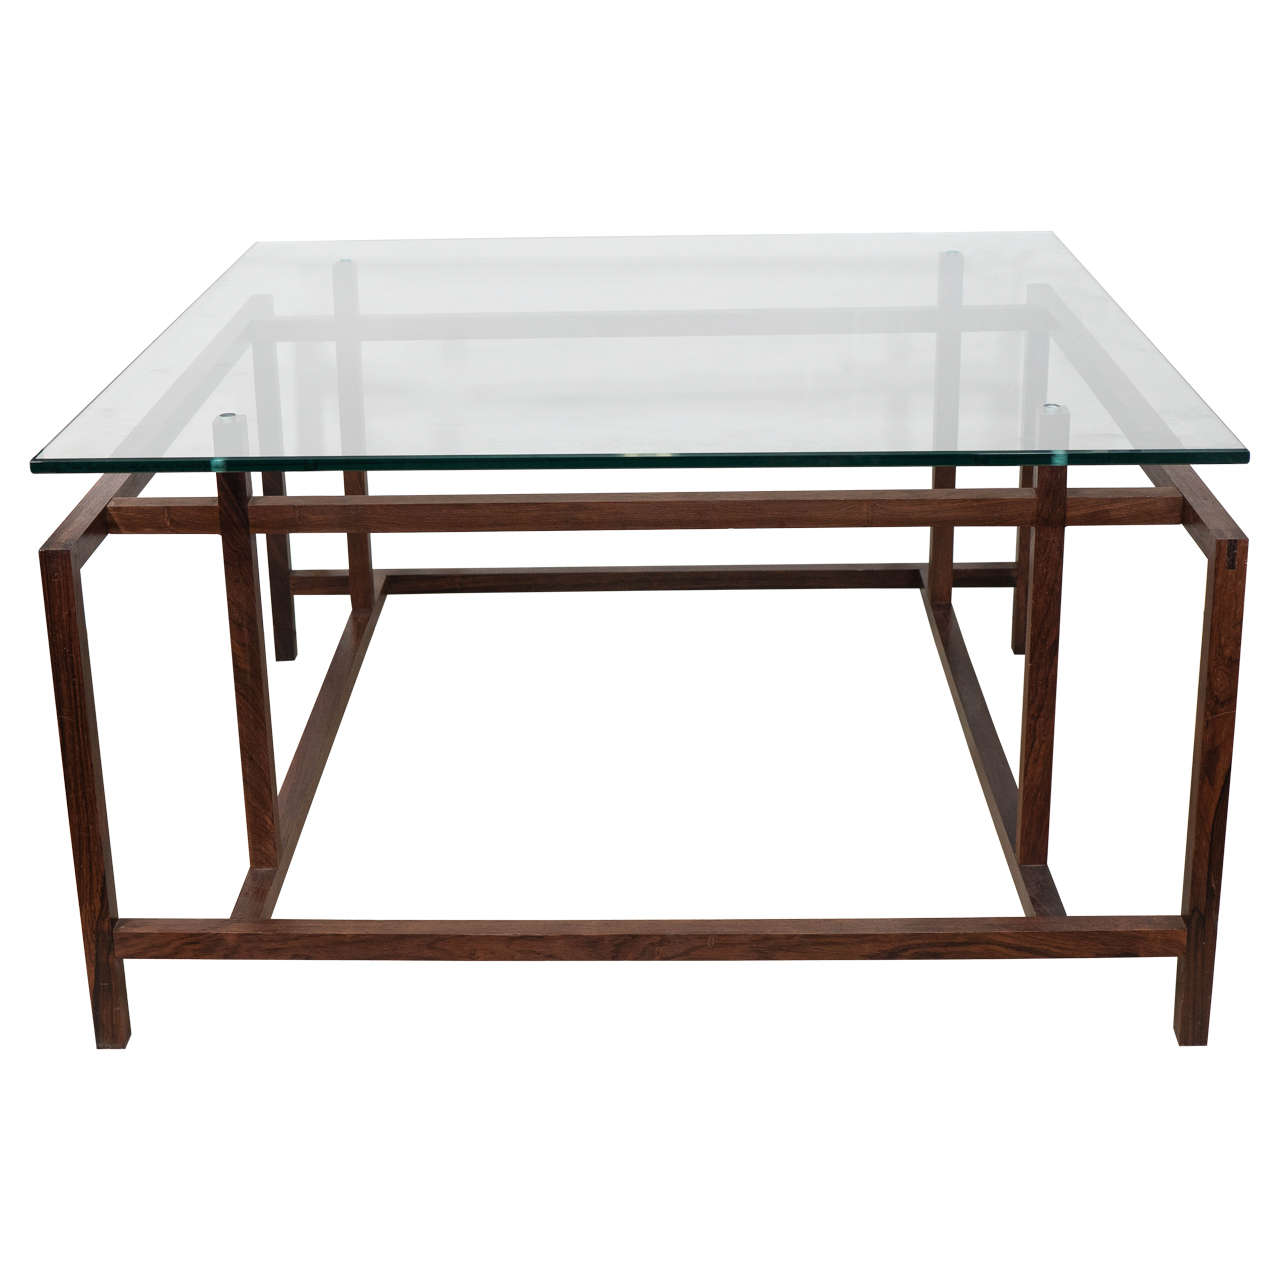 Henning Norgaard Modern Rosewood Coffee Table With Glass Top For Komfort